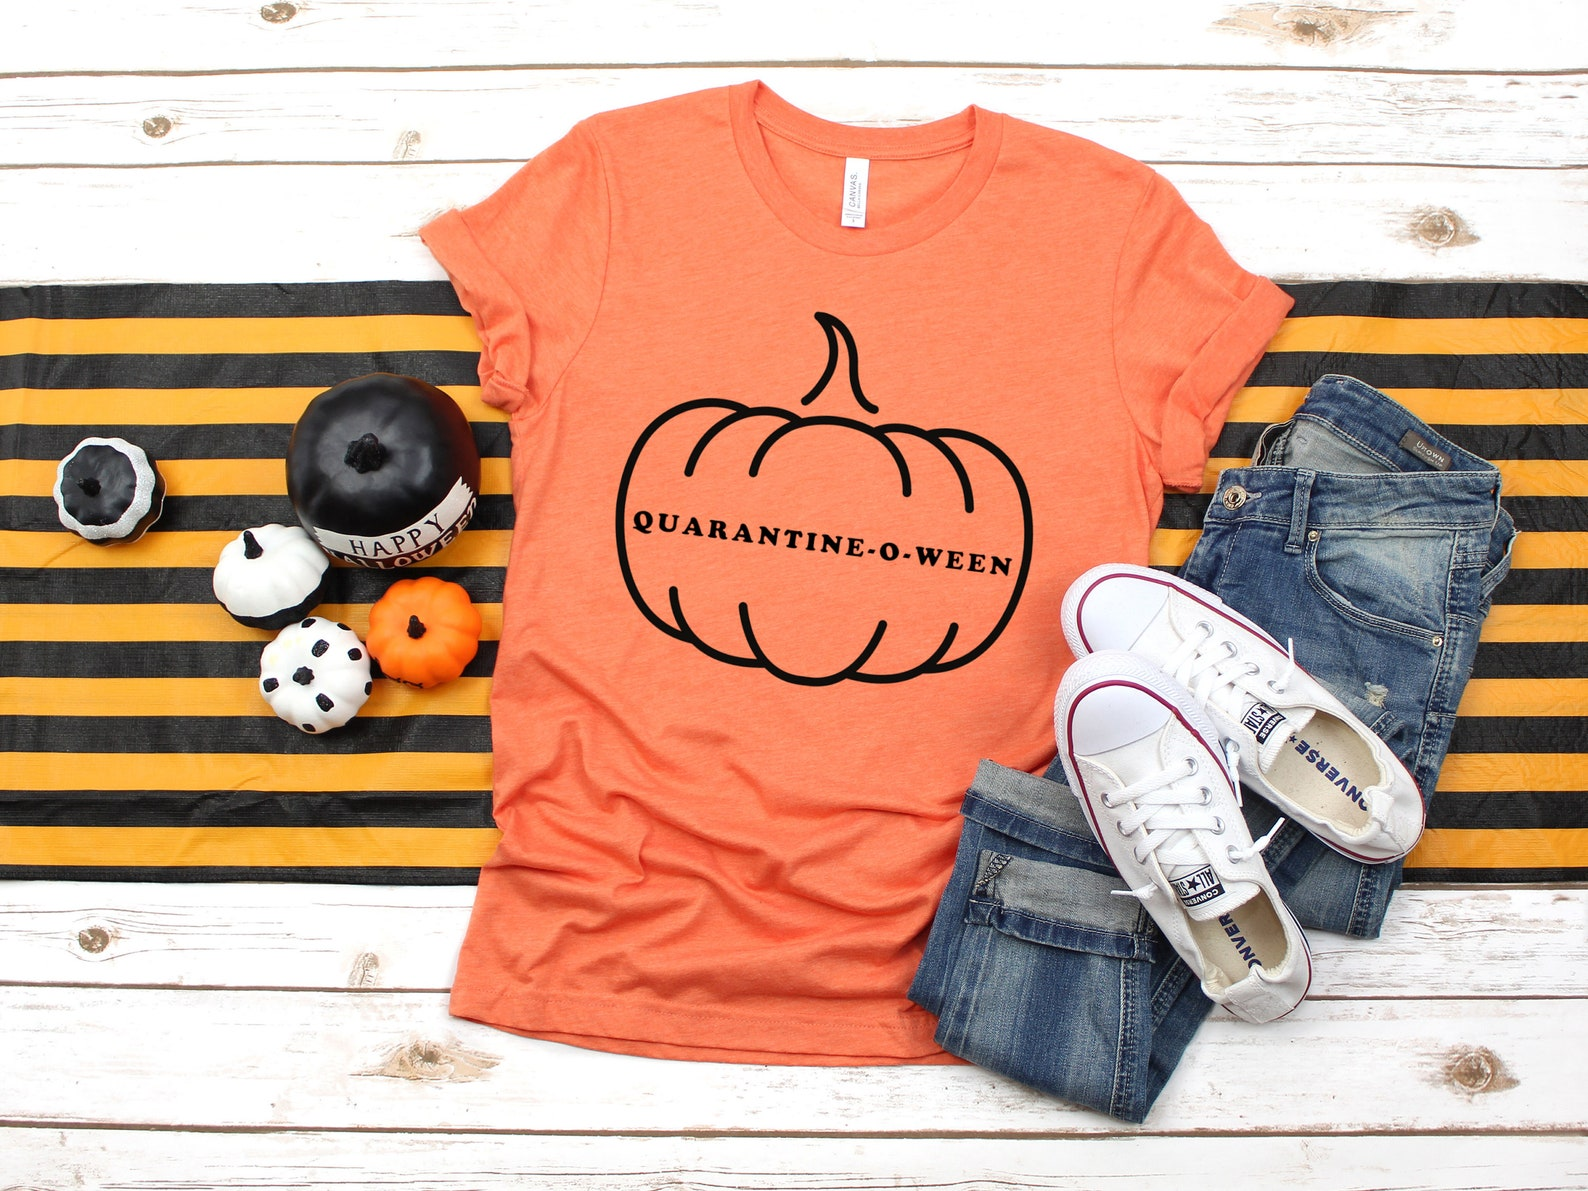 Quarantine-O-Ween T-Shirts for Women